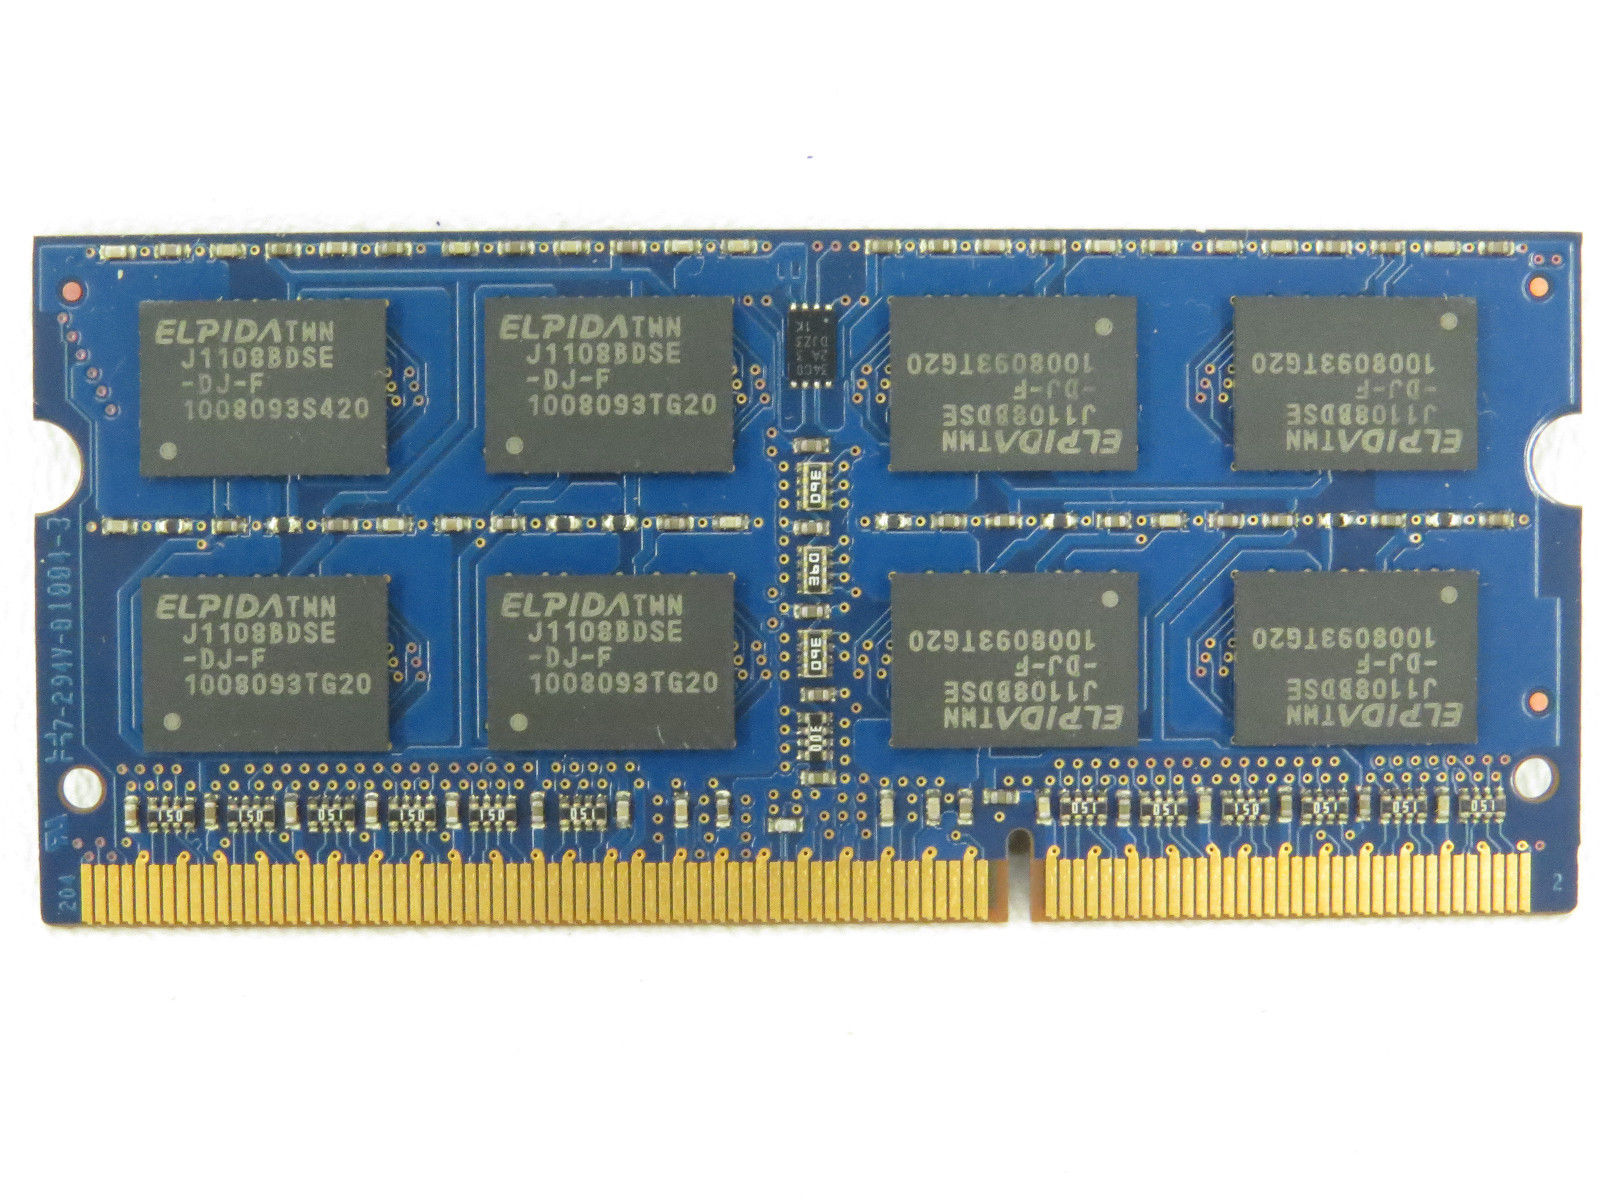 Memorie Notebook Ddr3 2 Gb 1066 Mhz Elpida - Second Hand